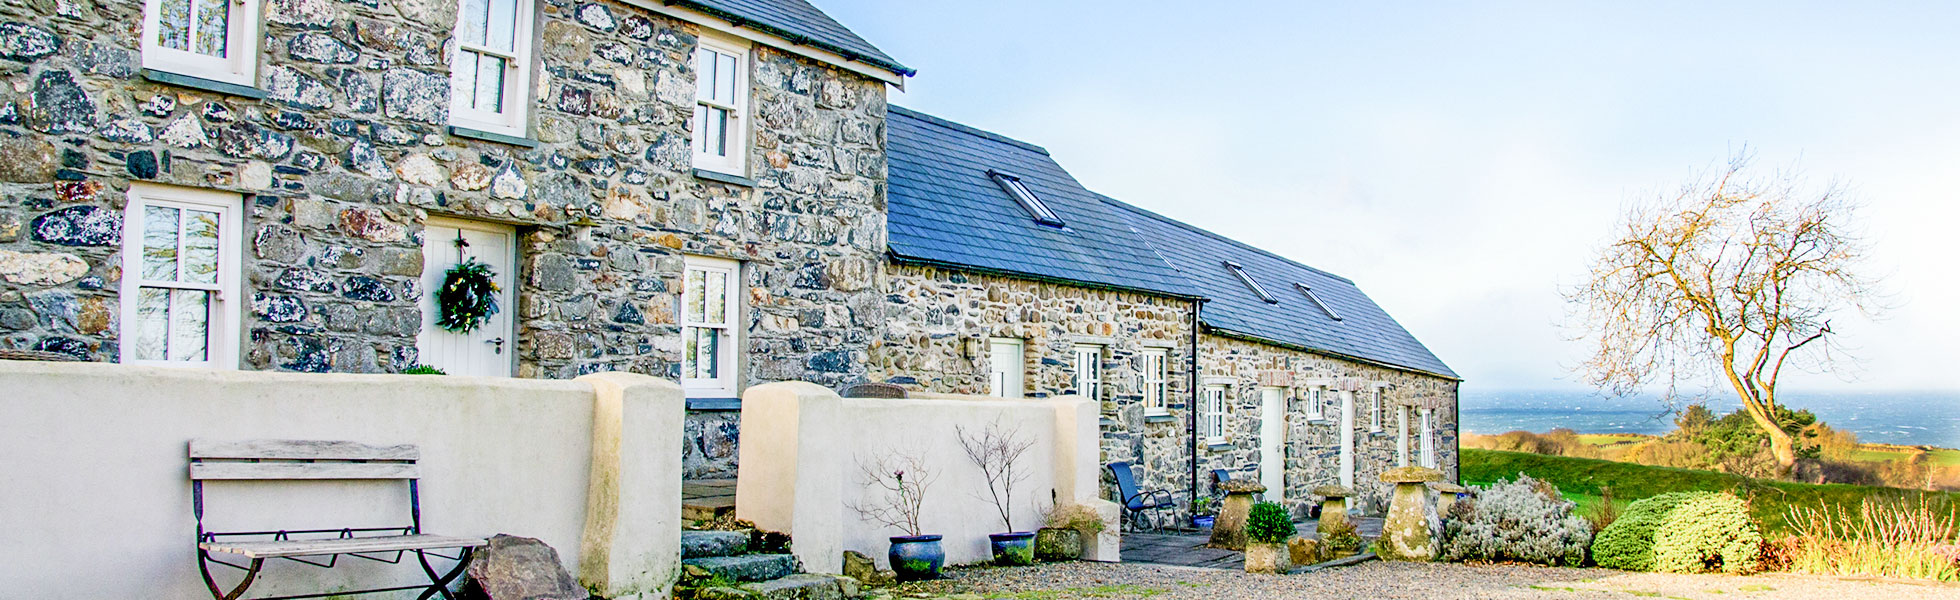 Yr Hafan cottages